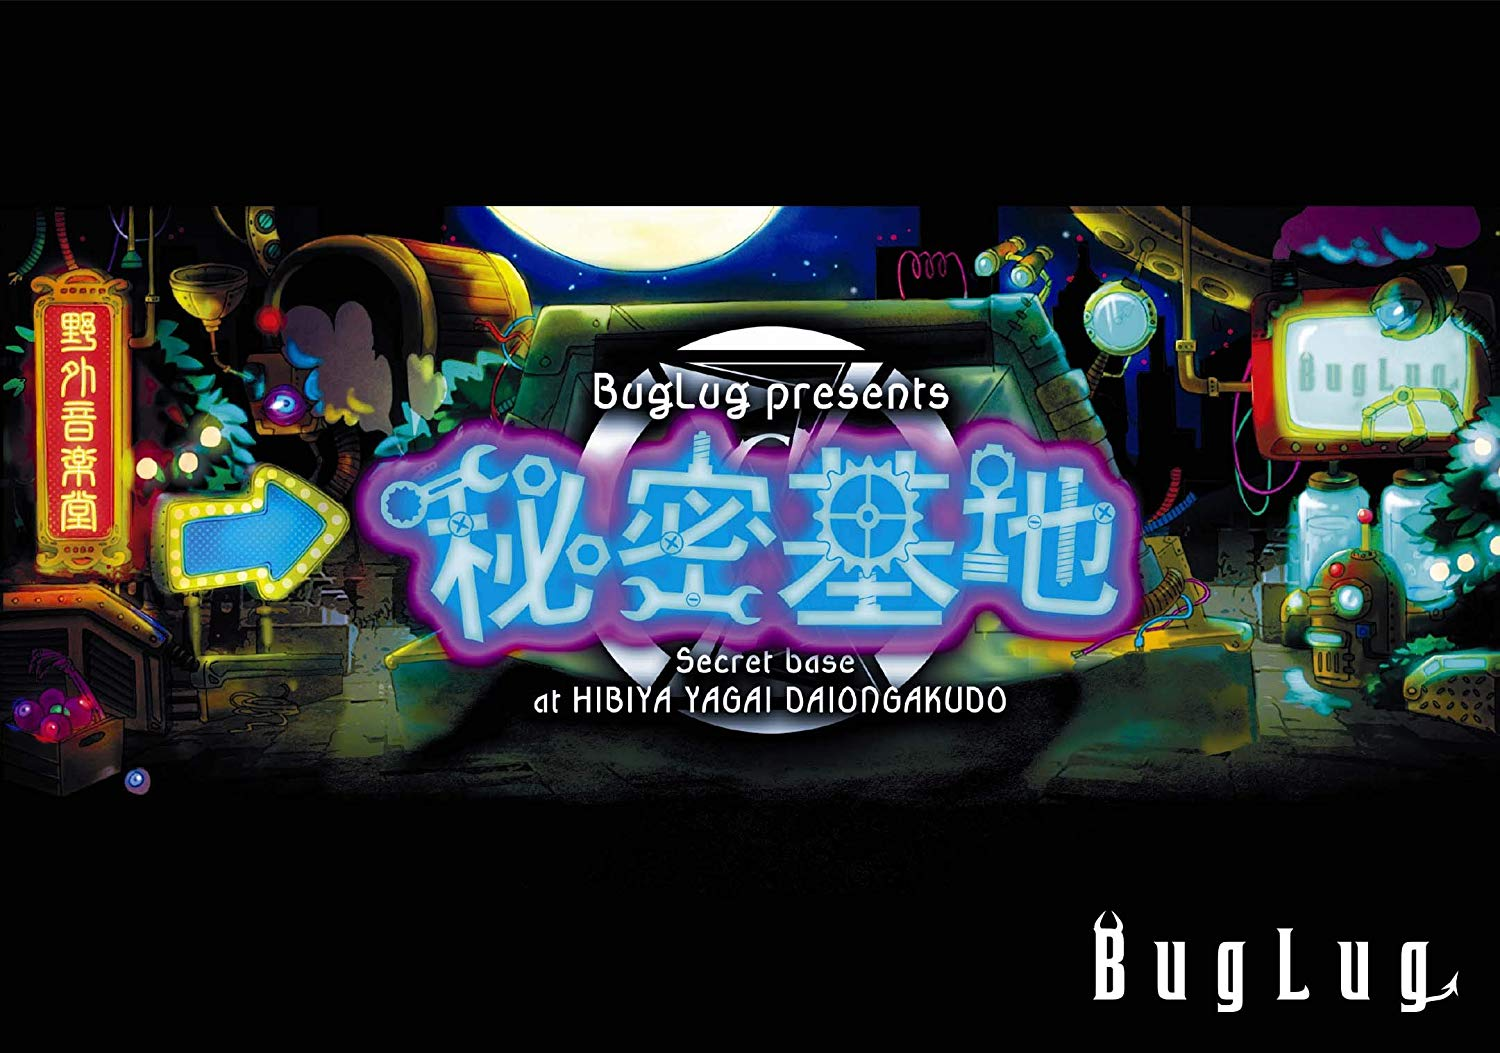 バグラグ の DVD 【通常盤】BugLug presents 秘密基地~Secret base at HIBIYA YAGAI DAIONGAKUDO~